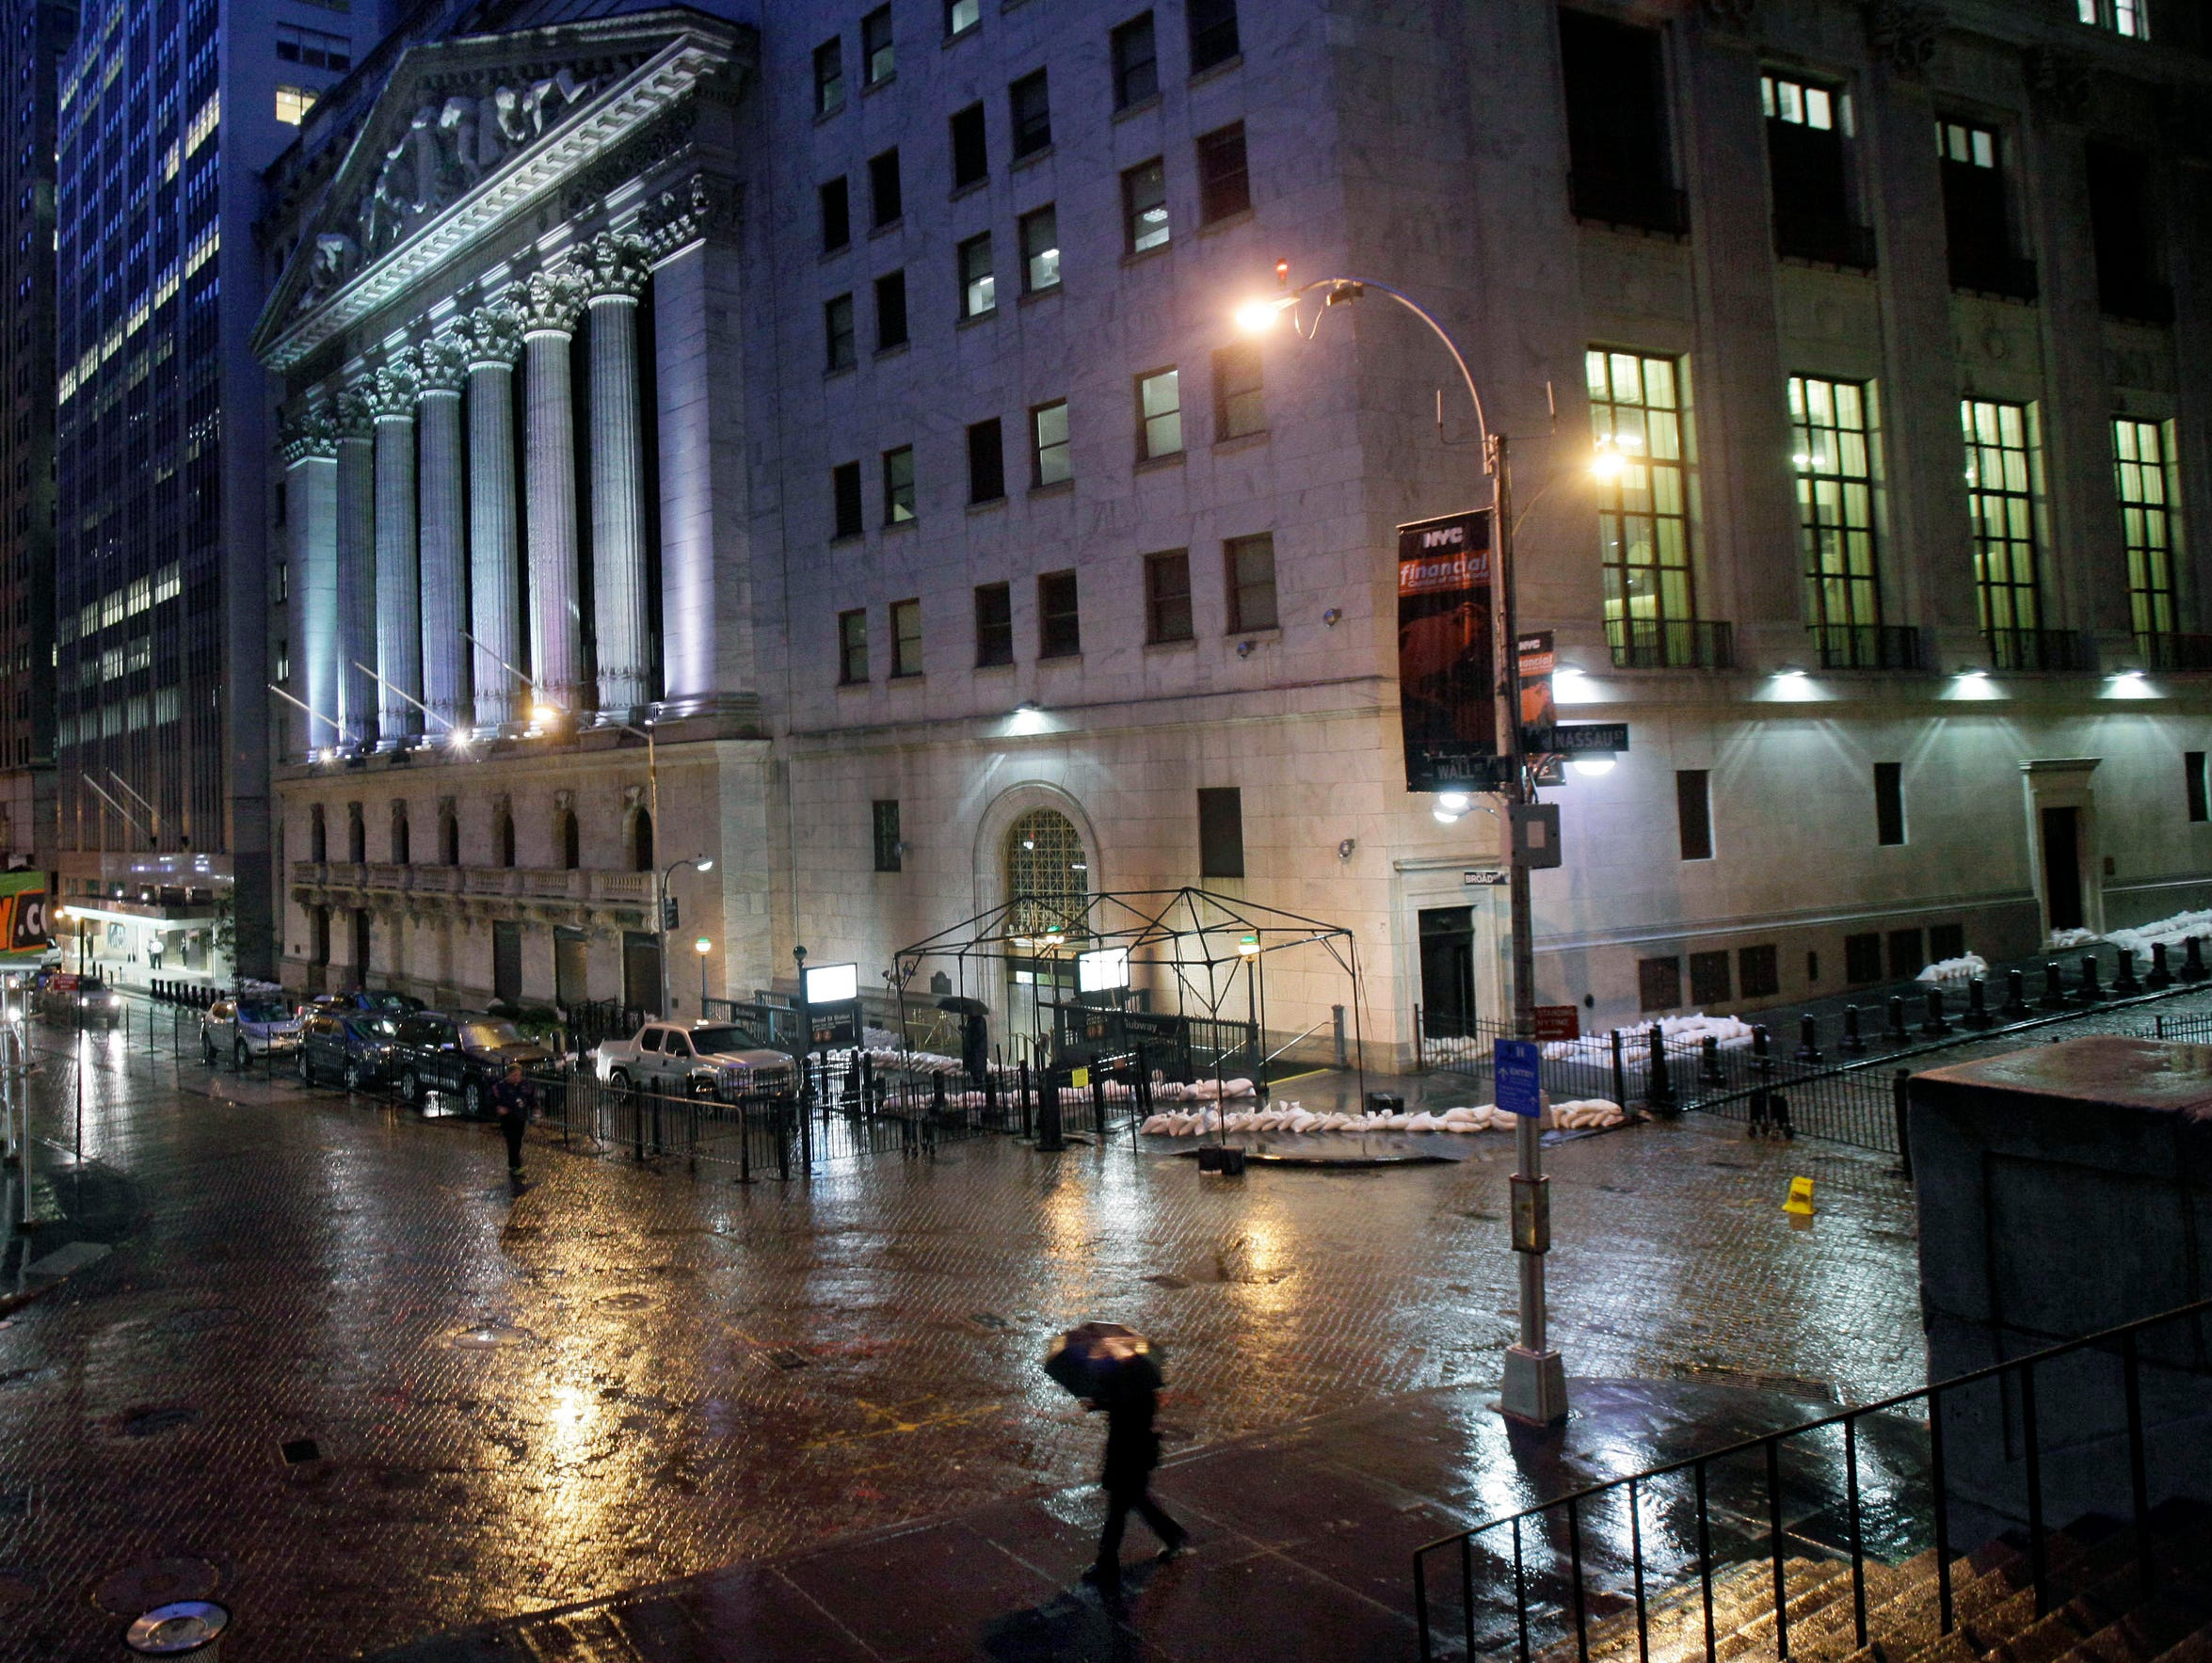 Sandbags protect the front of the New York Stock Exchange